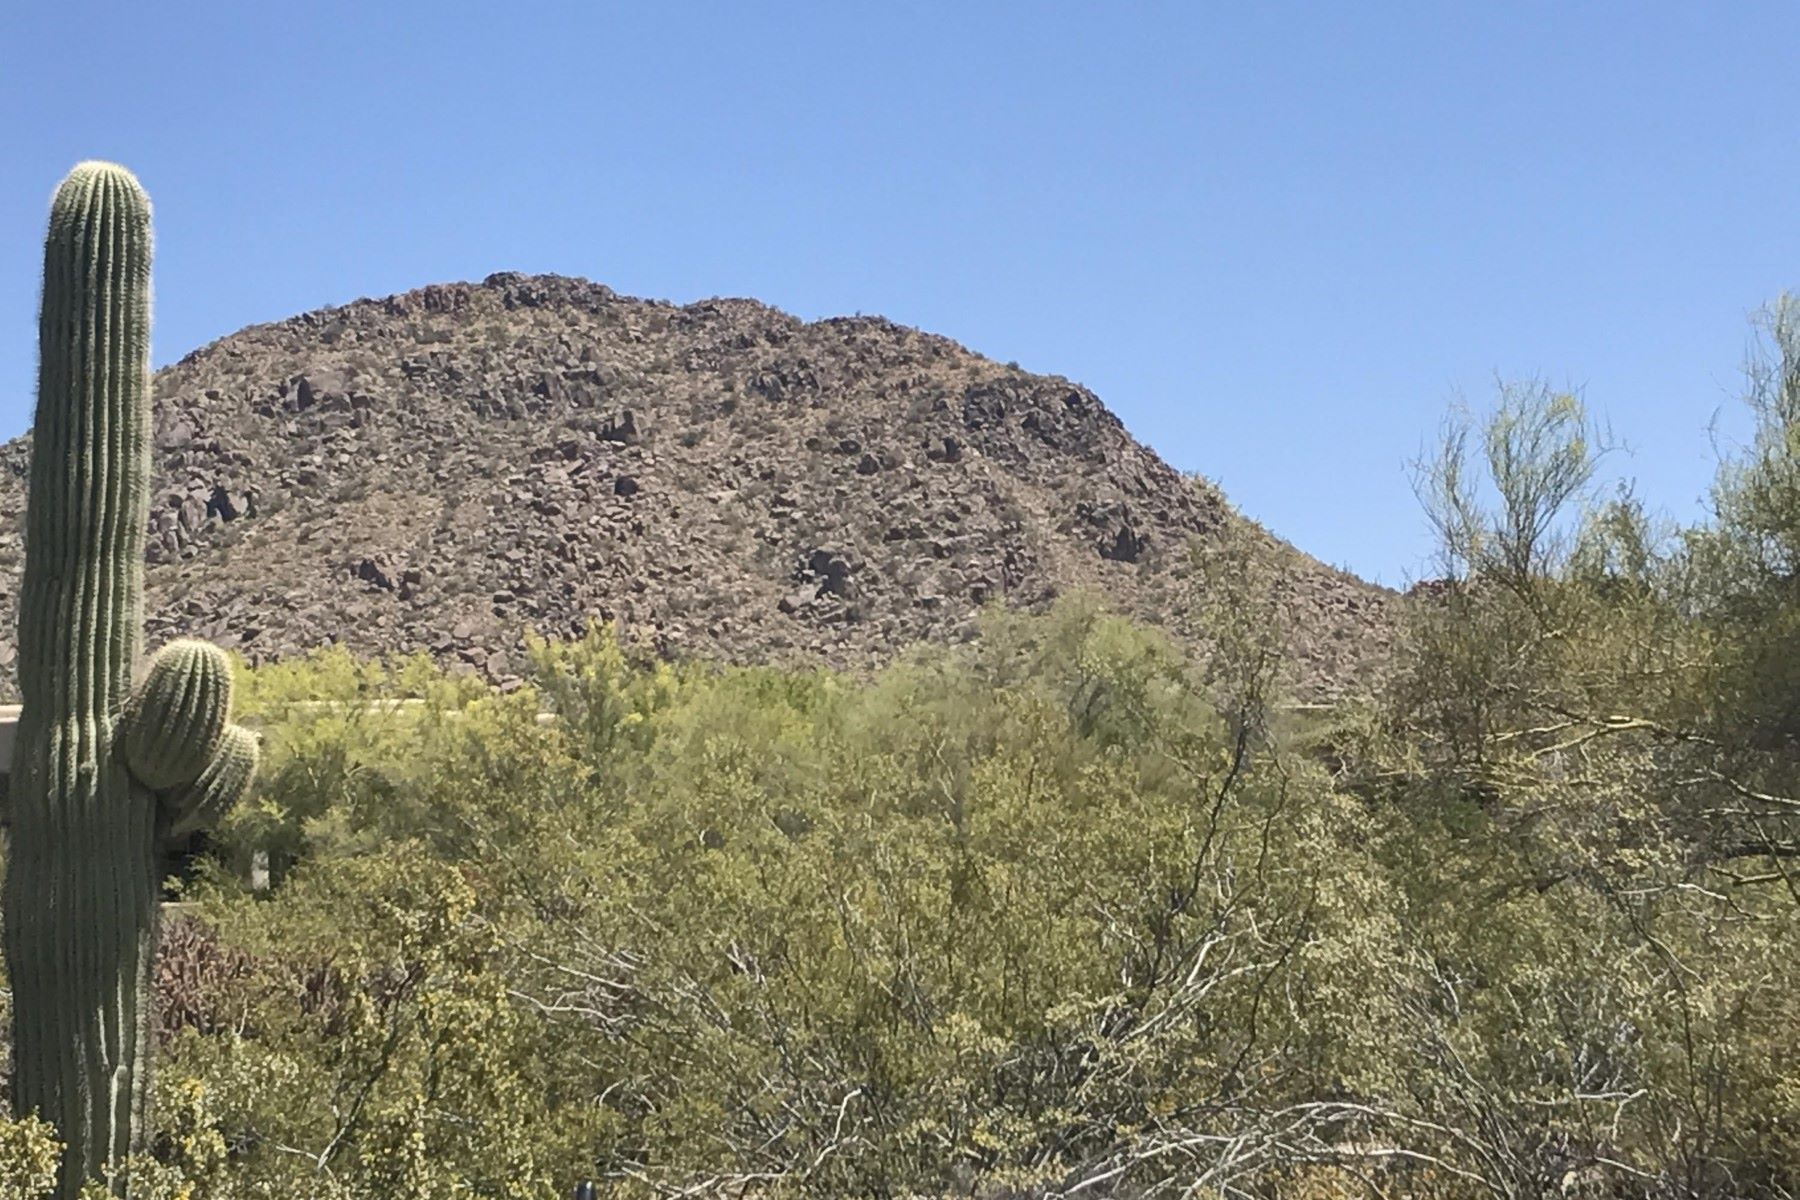 Terreno por un Venta en Outstanding cul de sac lot in the exclusive community of Desert Highlands 10040 E Happy Valley Rd #361, Scottsdale, Arizona, 85255 Estados Unidos